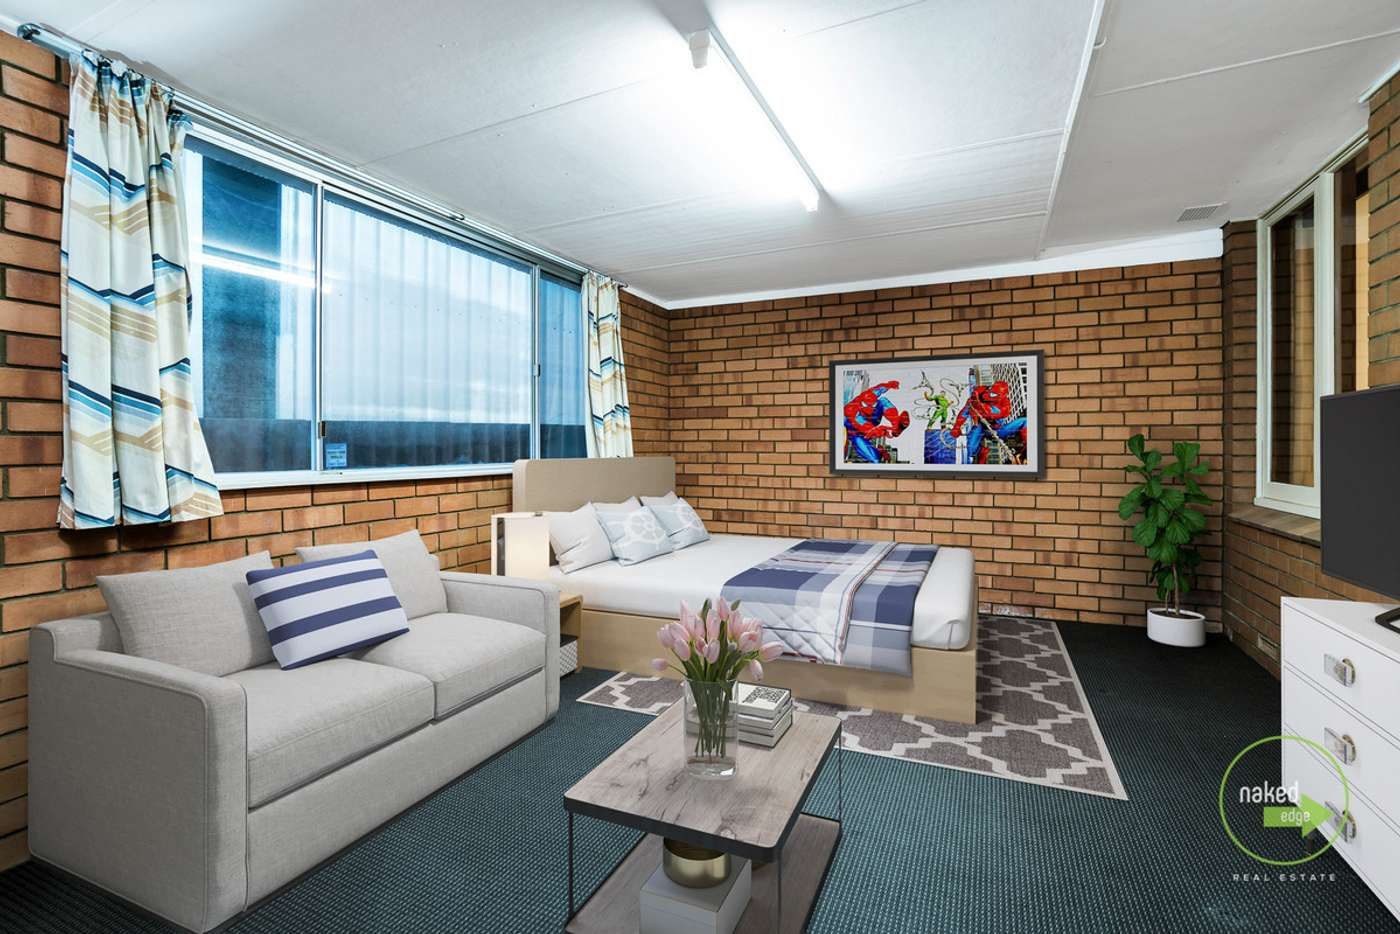 Fifth view of Homely house listing, 8 Hemeleers Street, Gosnells WA 6110